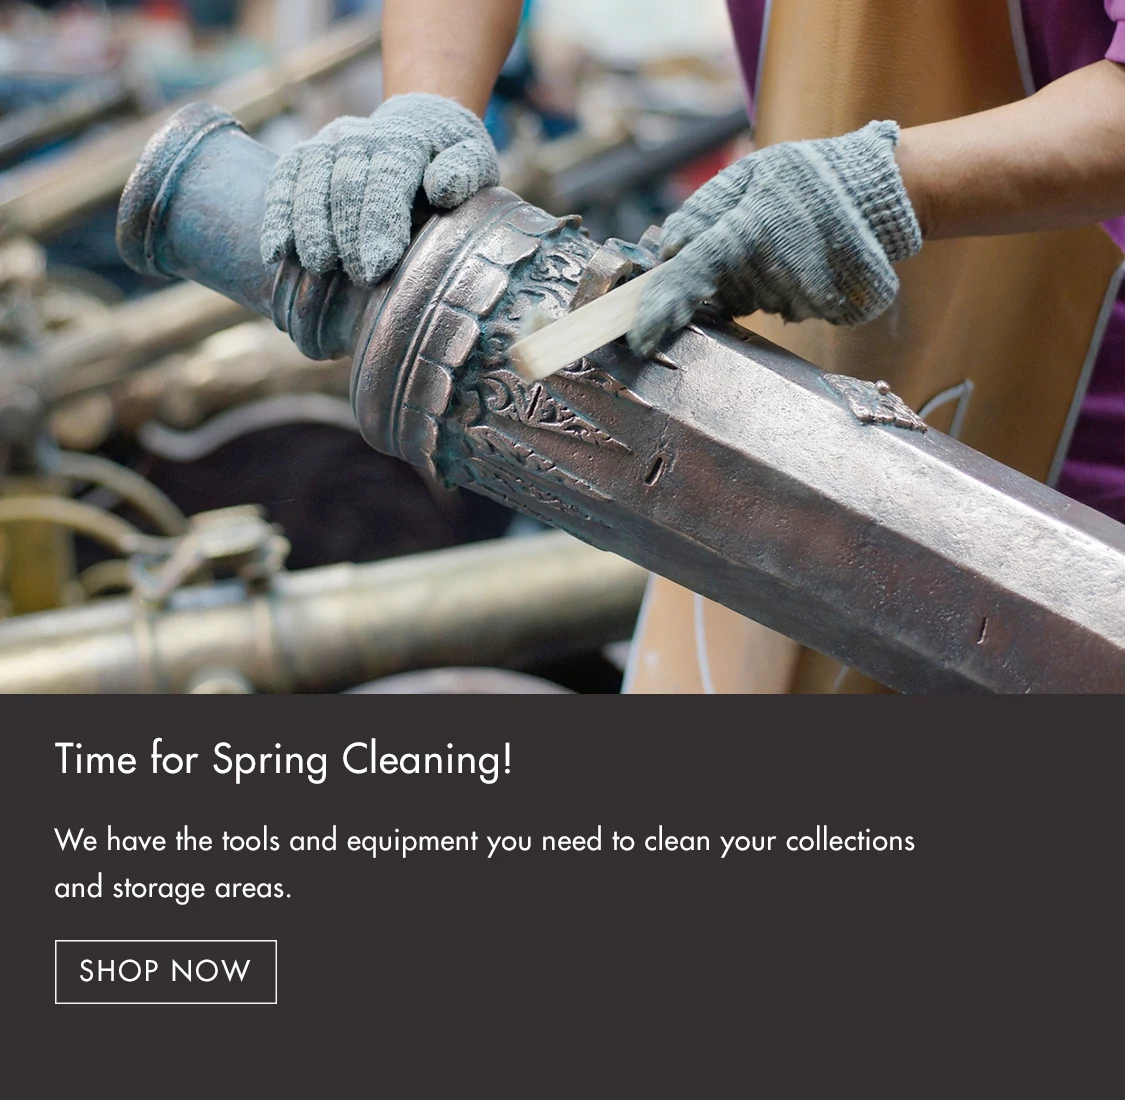 HPBanner_SpringCleaning